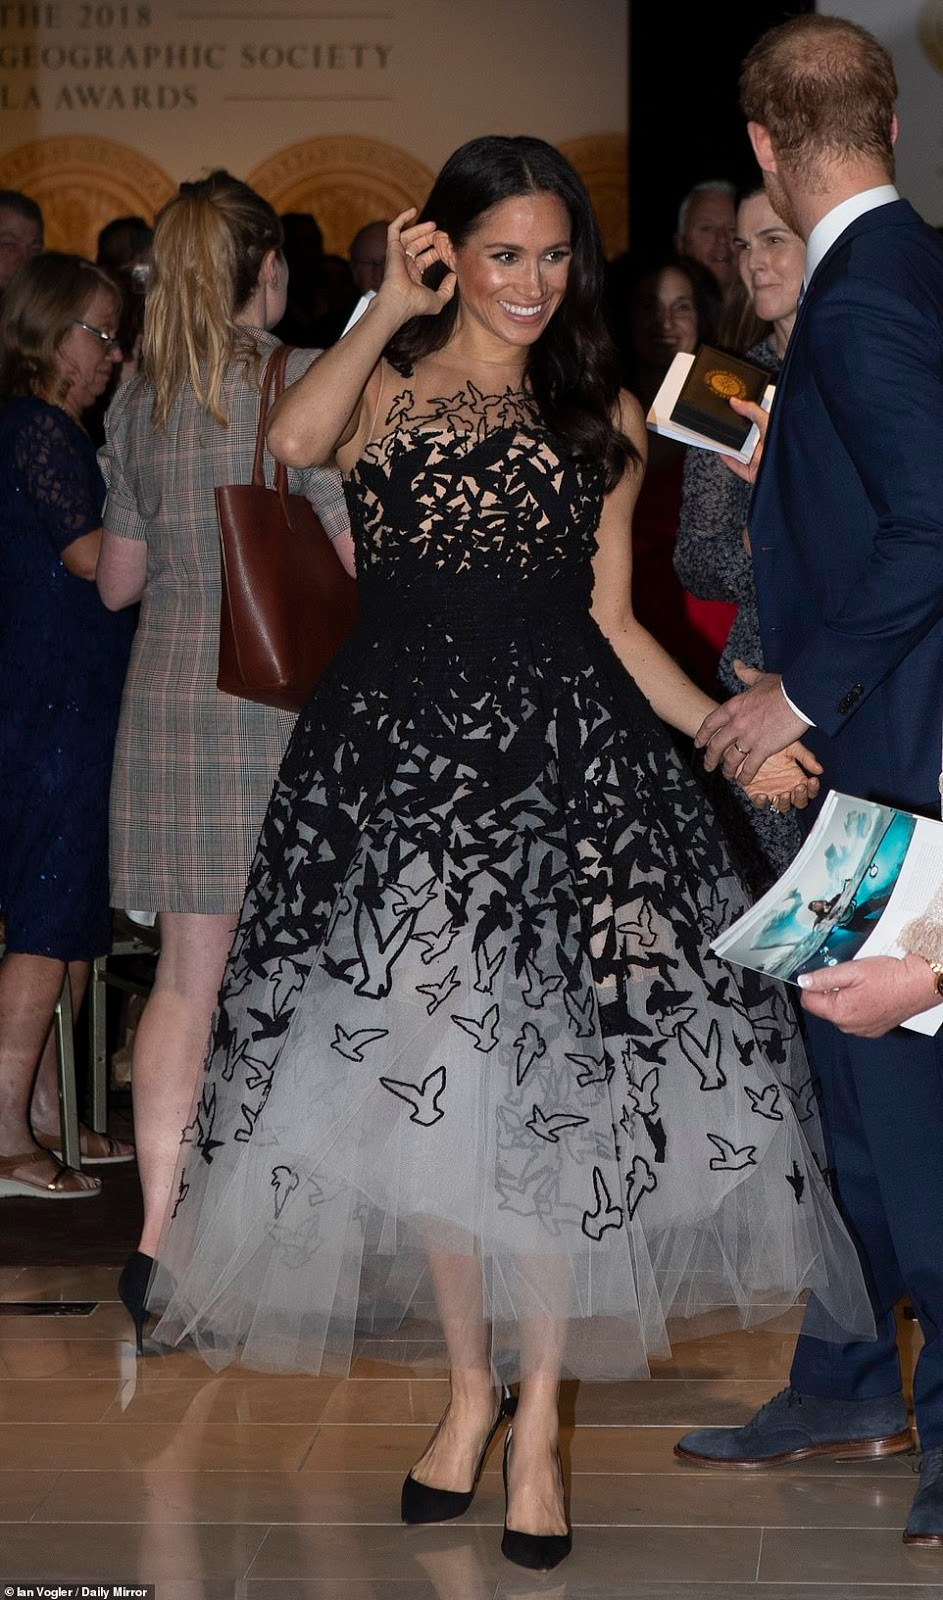 Meghan Markle dazzles in Oscar de la Renta at Sydney Awards Ceremony